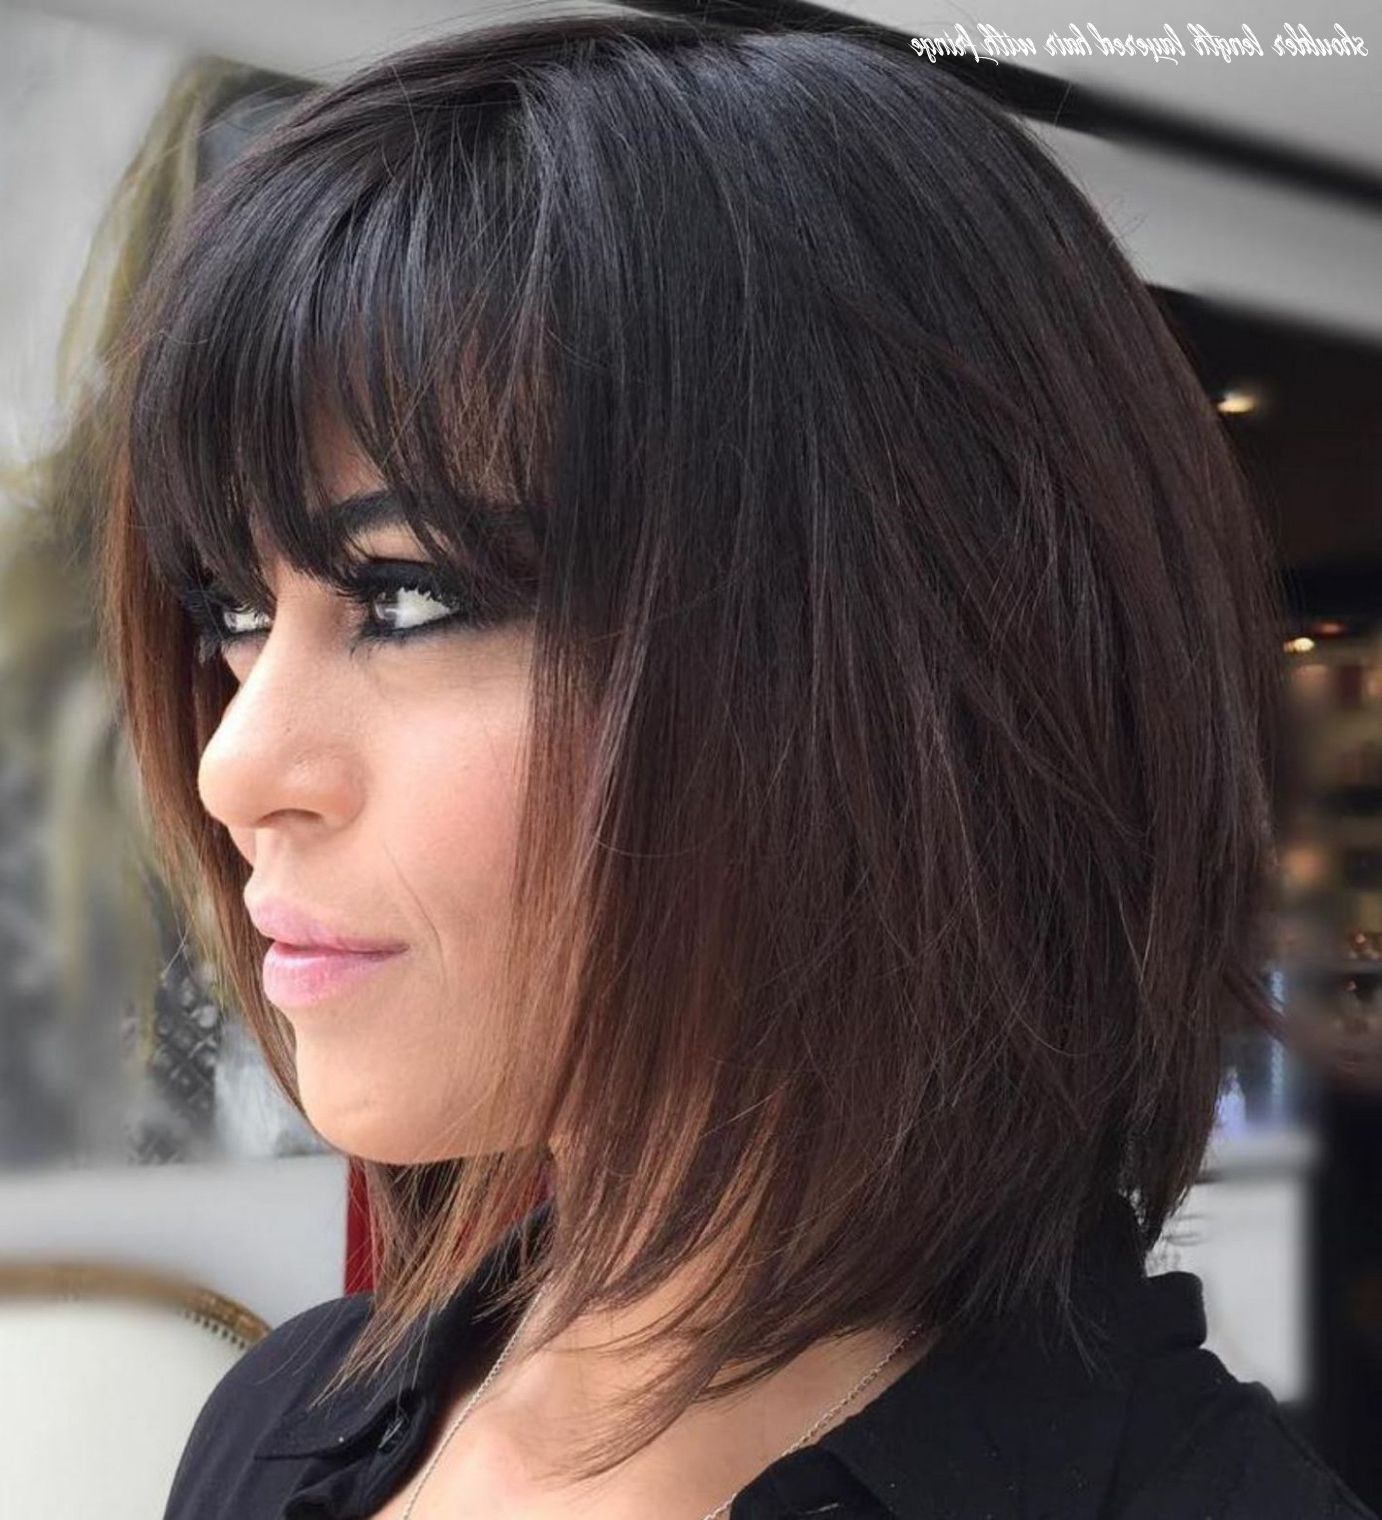 2019 Full Fringe And Face Framing Layers Hairstyles With 9 Shoulder Length Layered Hair With Fringe – Undercut (View 9 of 20)